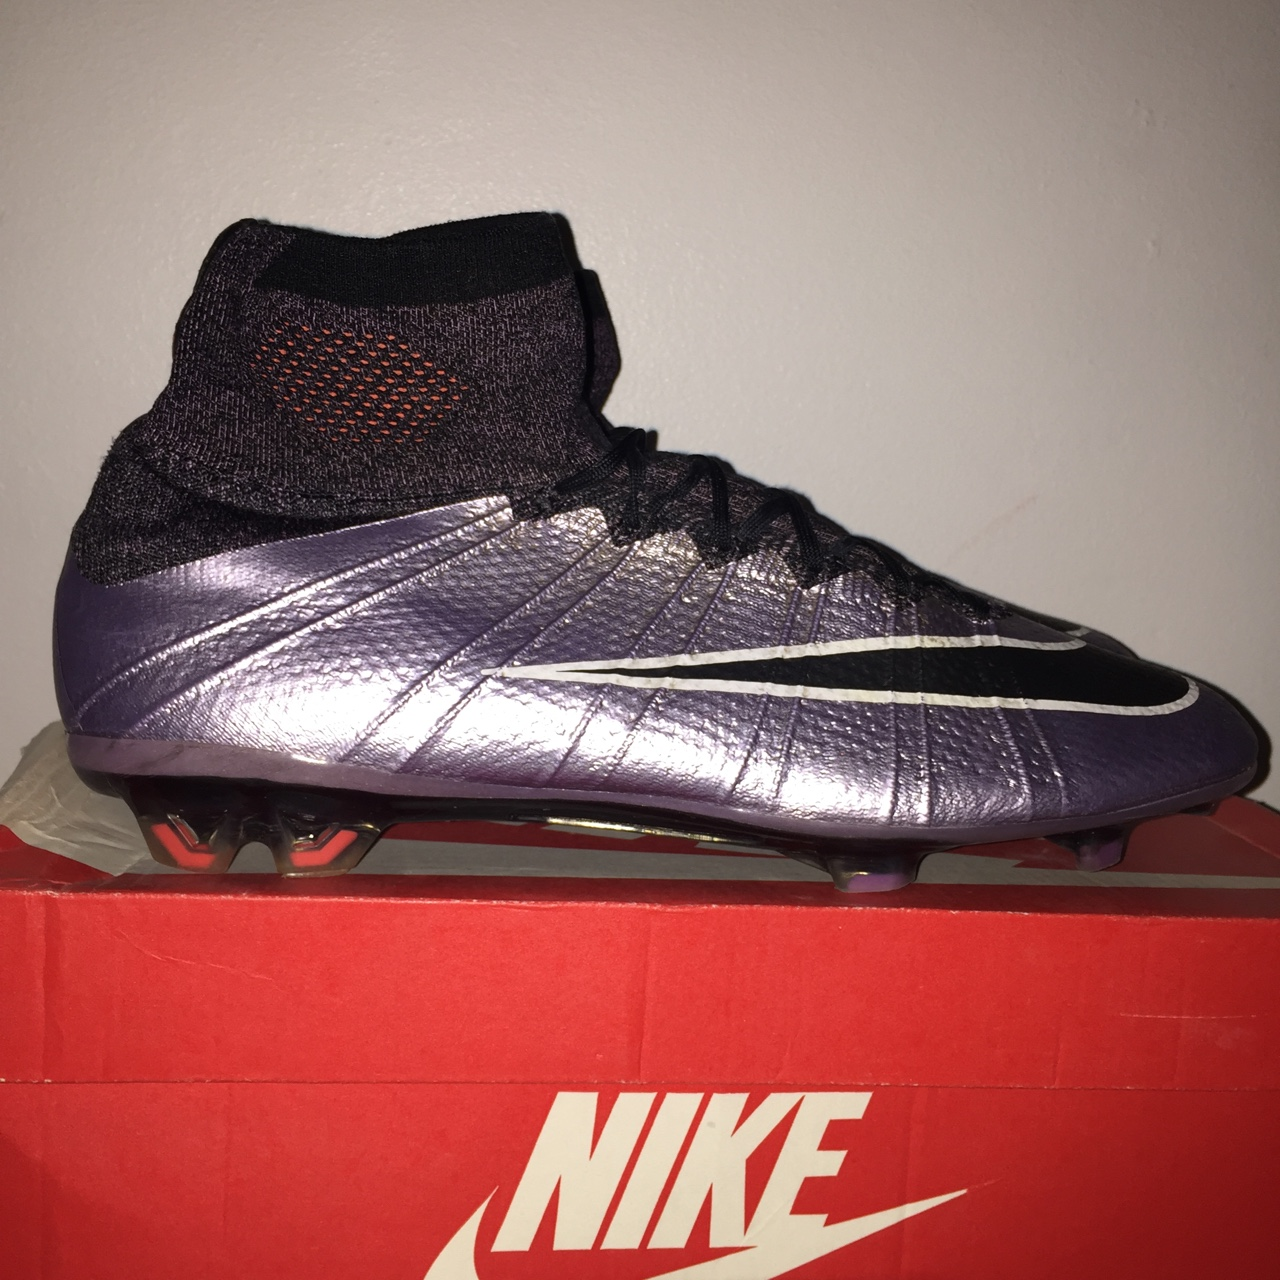 the best attitude b6fd0 2d5ad Nike Mercurial Superfly 4 Football Boots | ACC |... - Depop